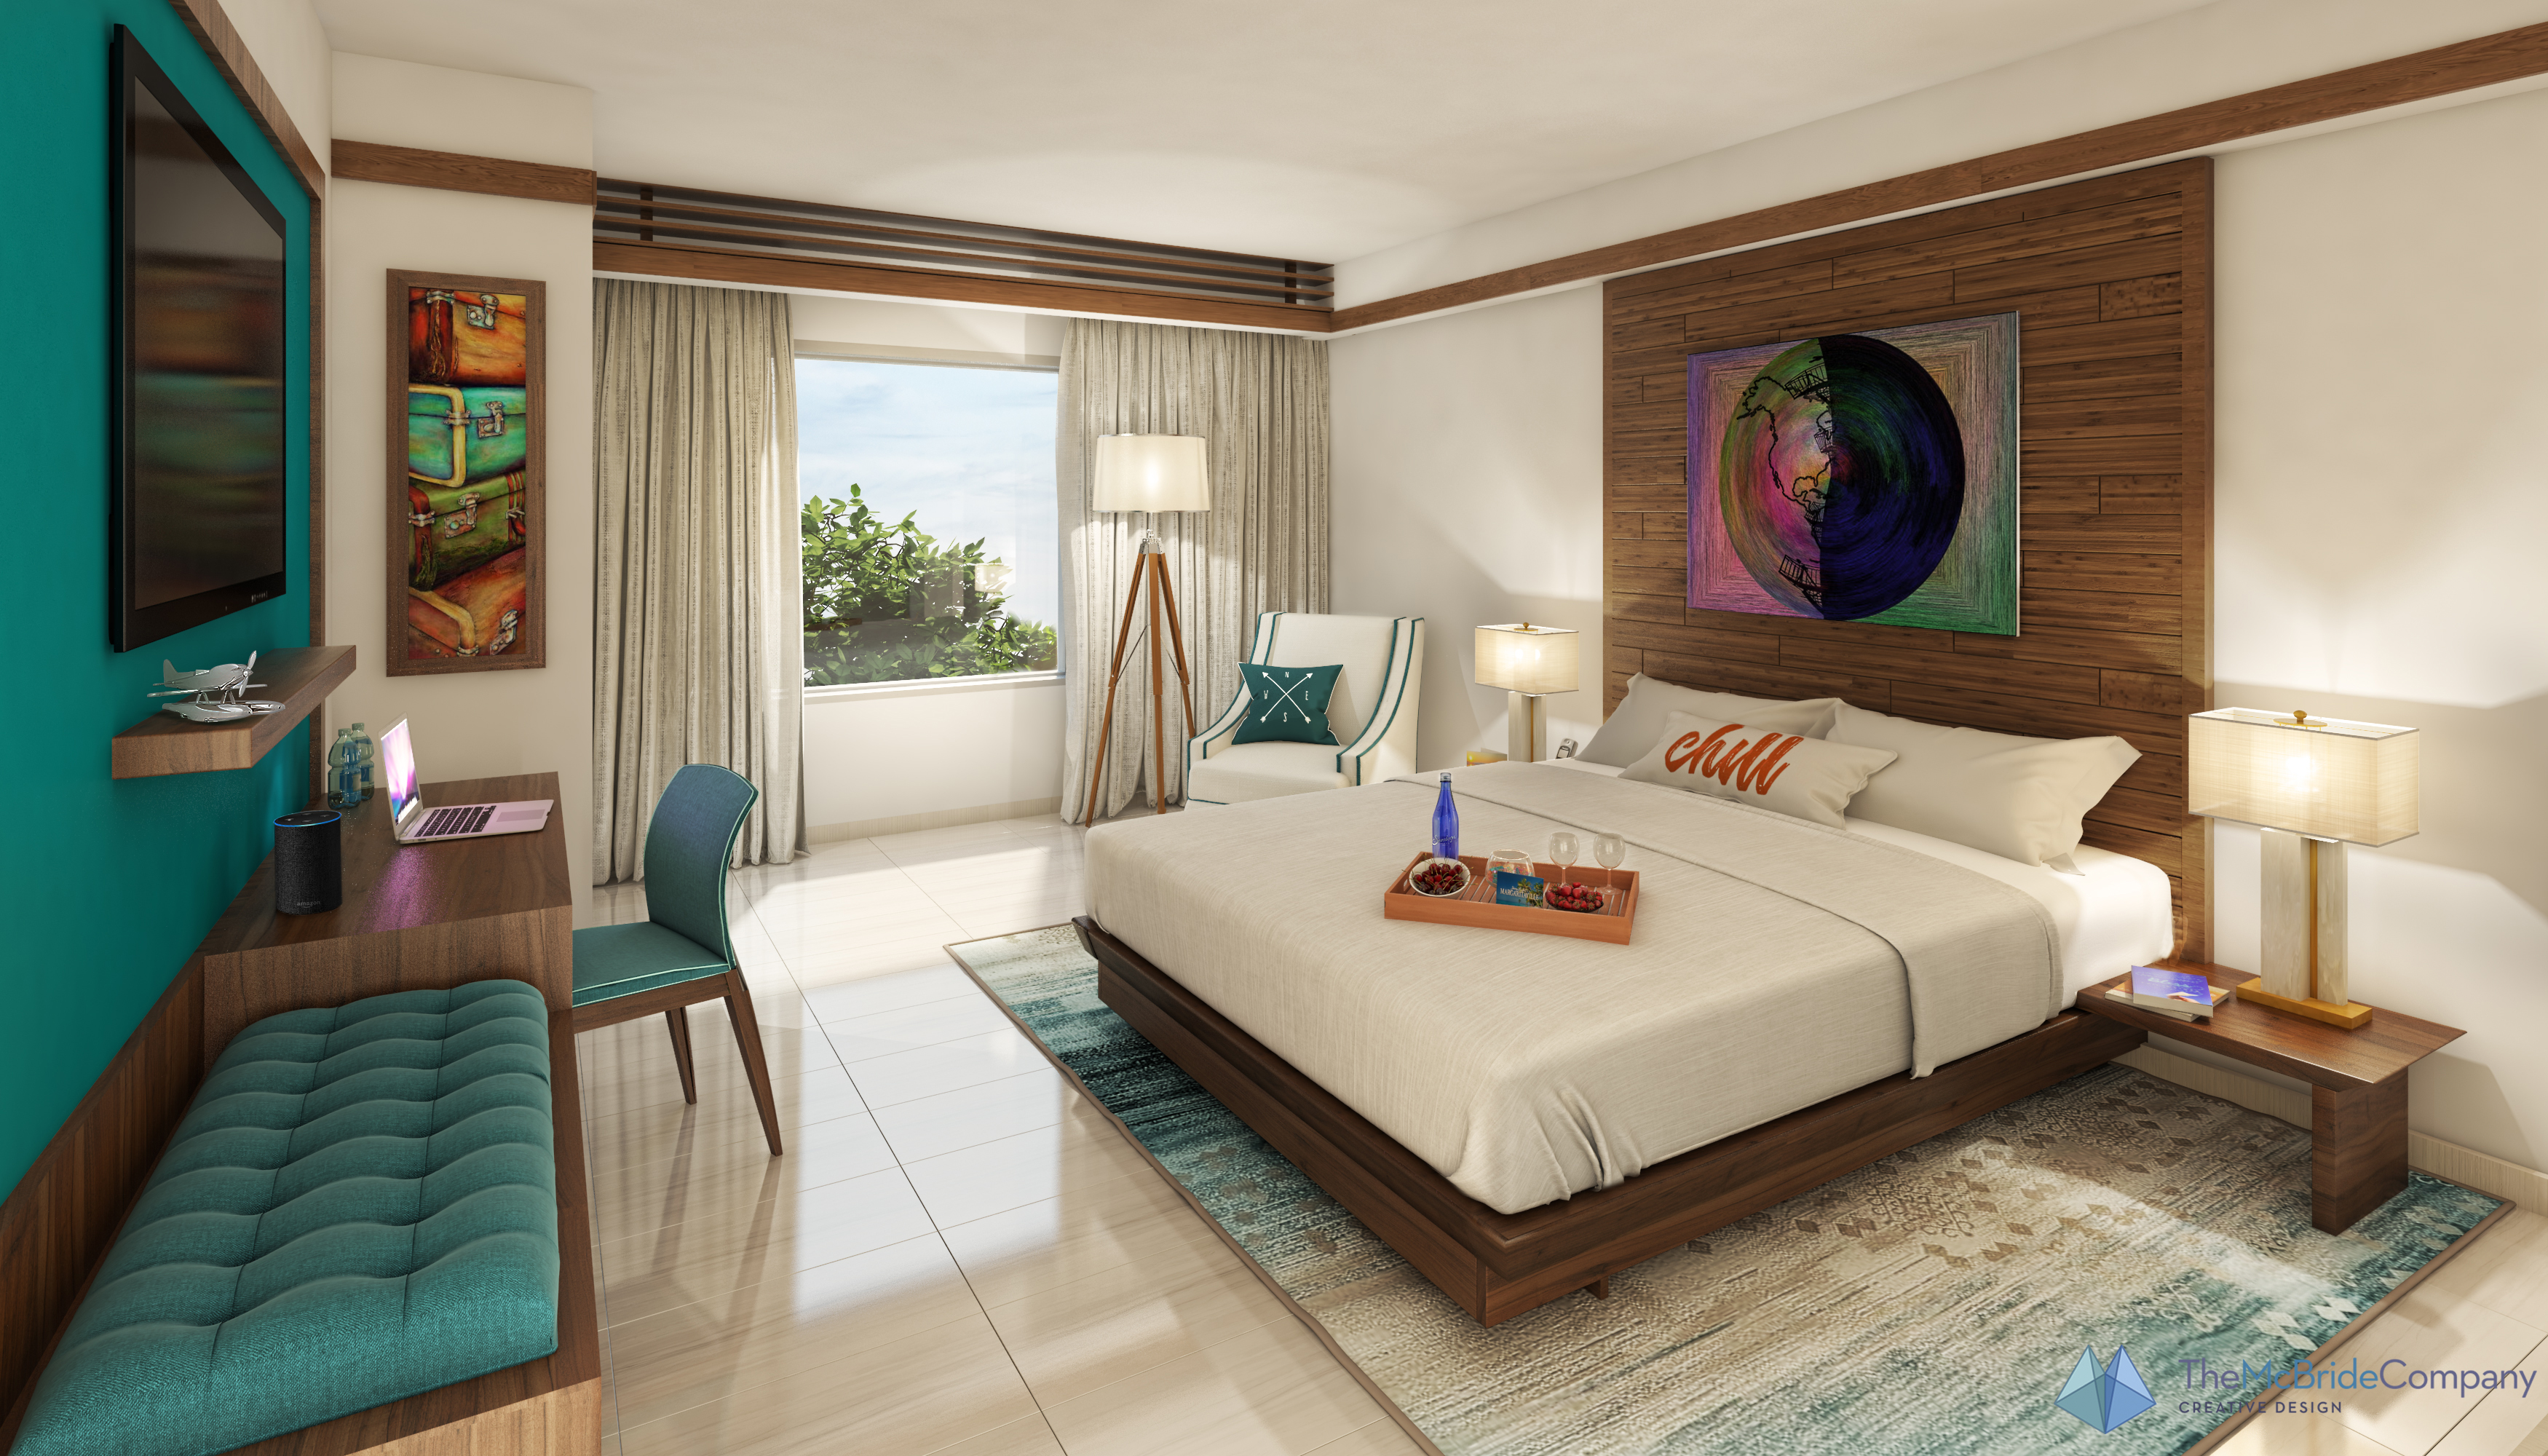 The guestrooms will have familiar elements from larger-scale Margaritaville resorts, including the same bedding.